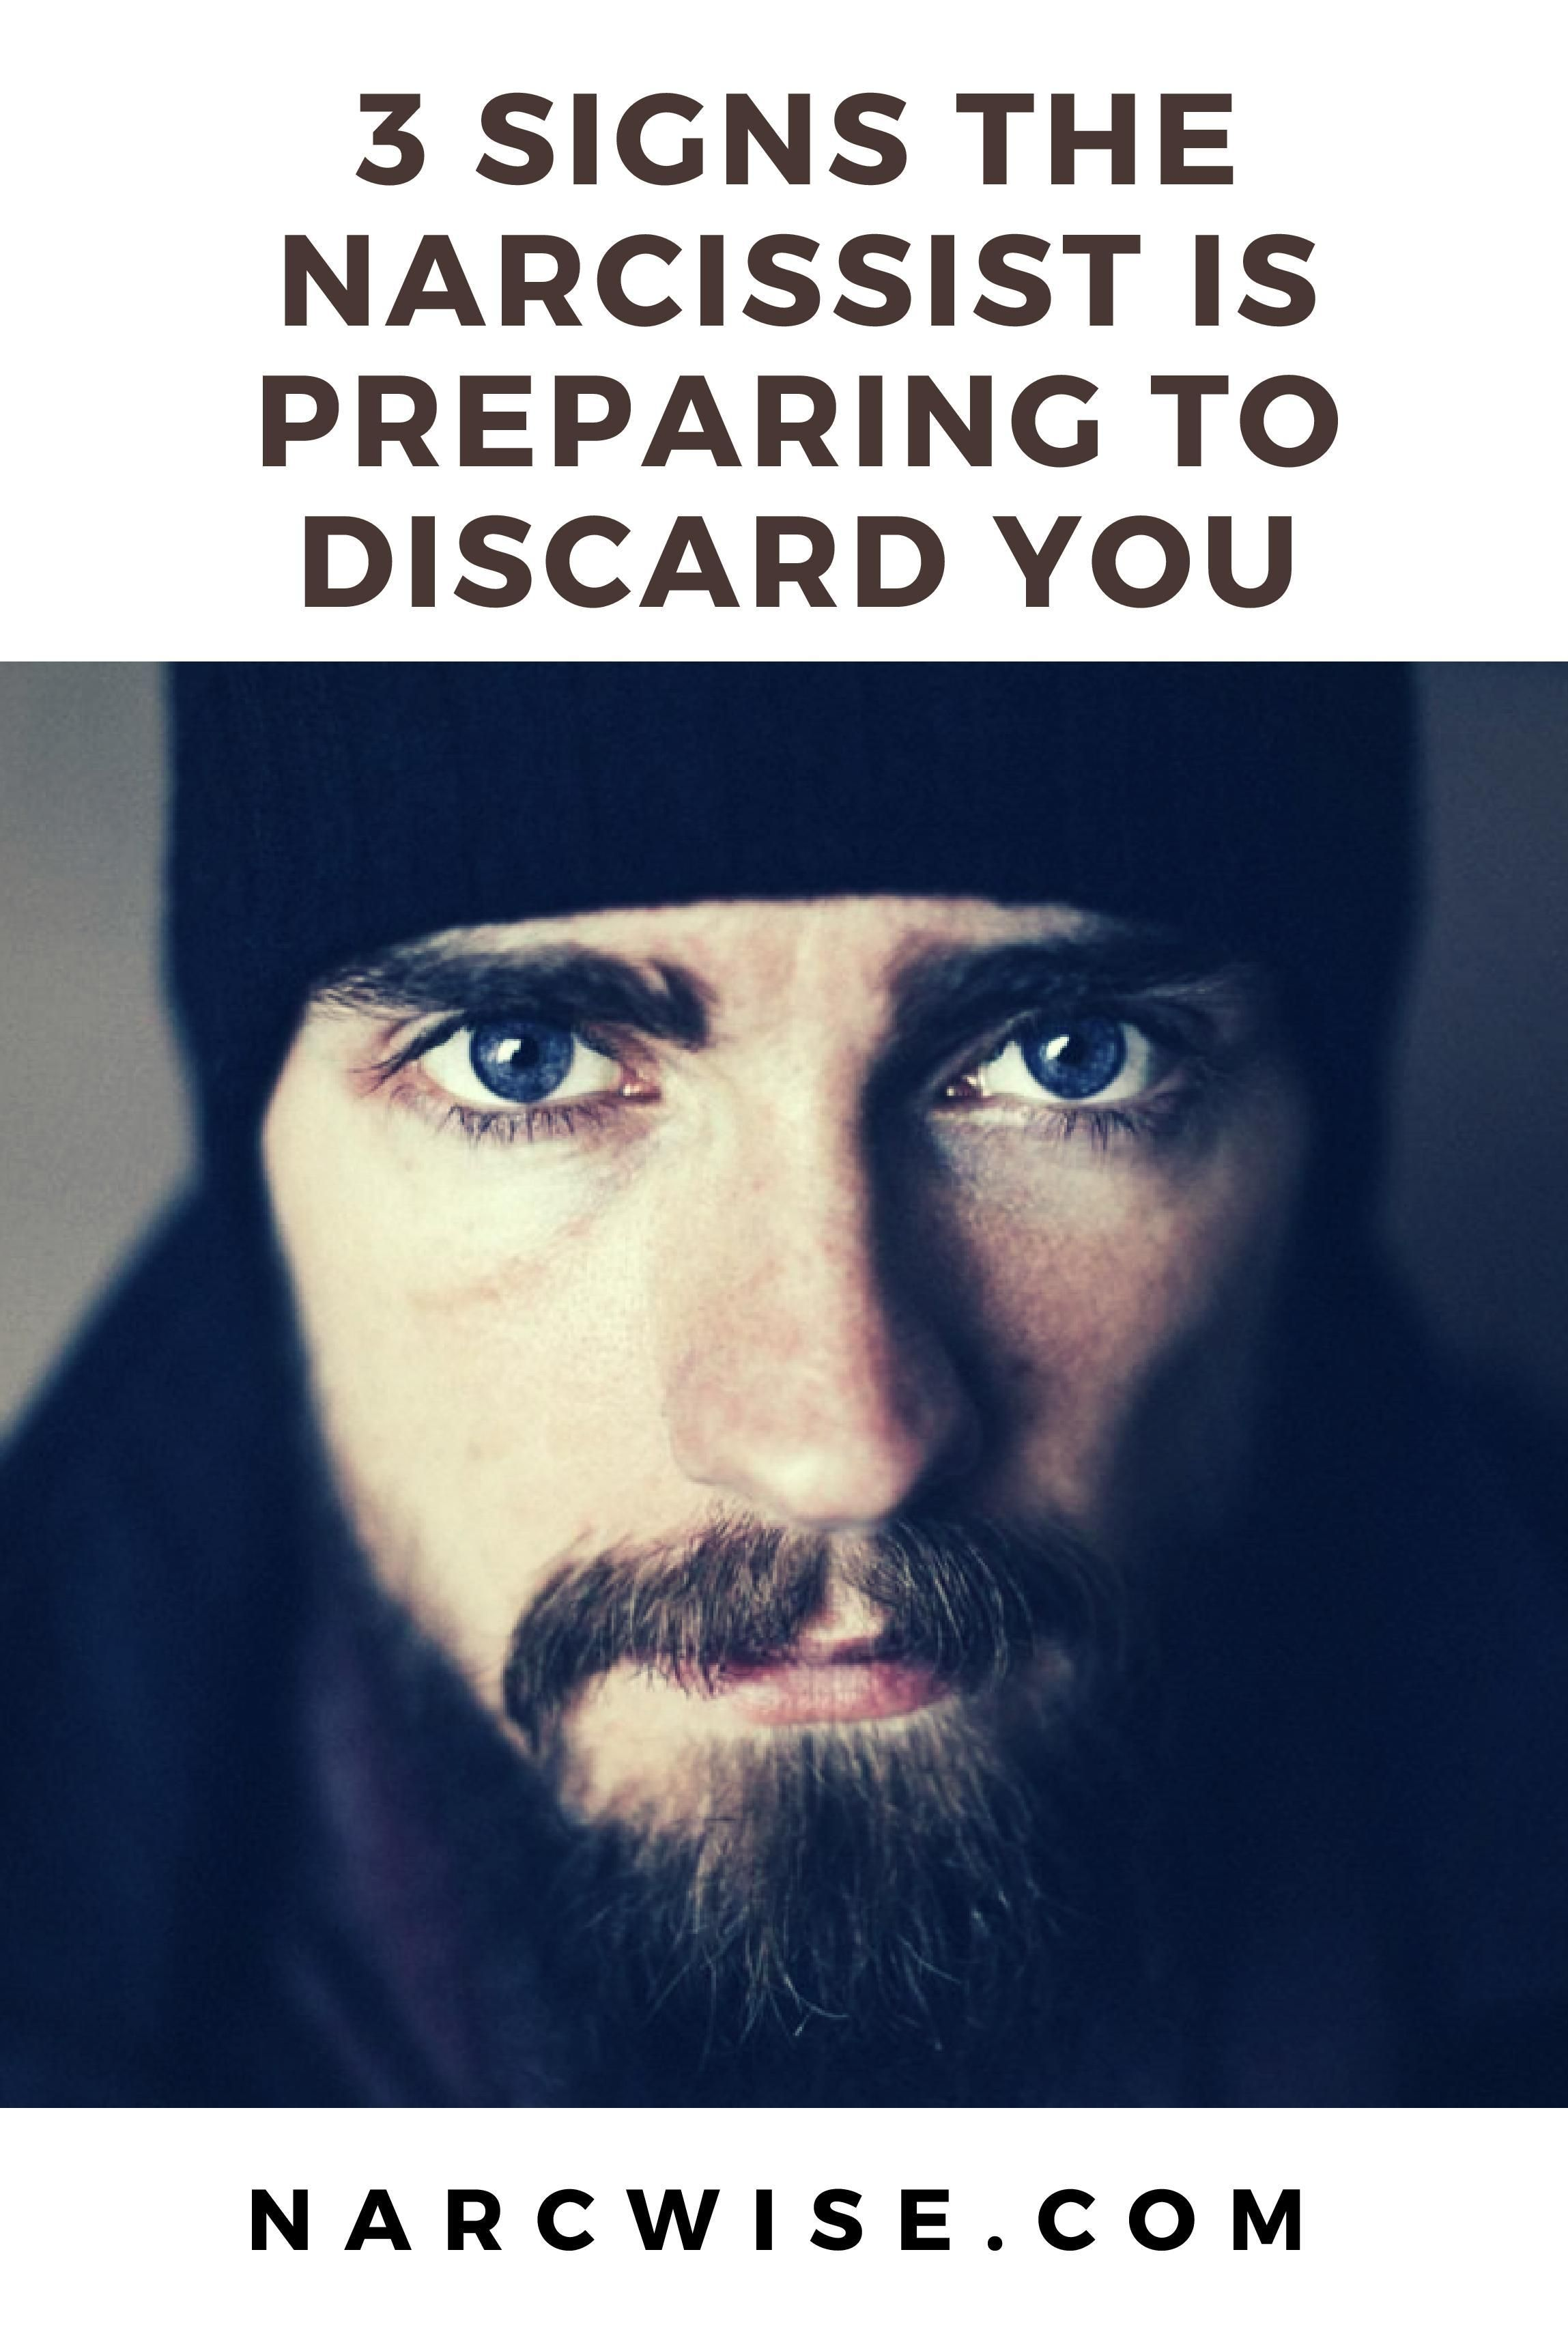 3 signs the narcissist is preparing to discard you